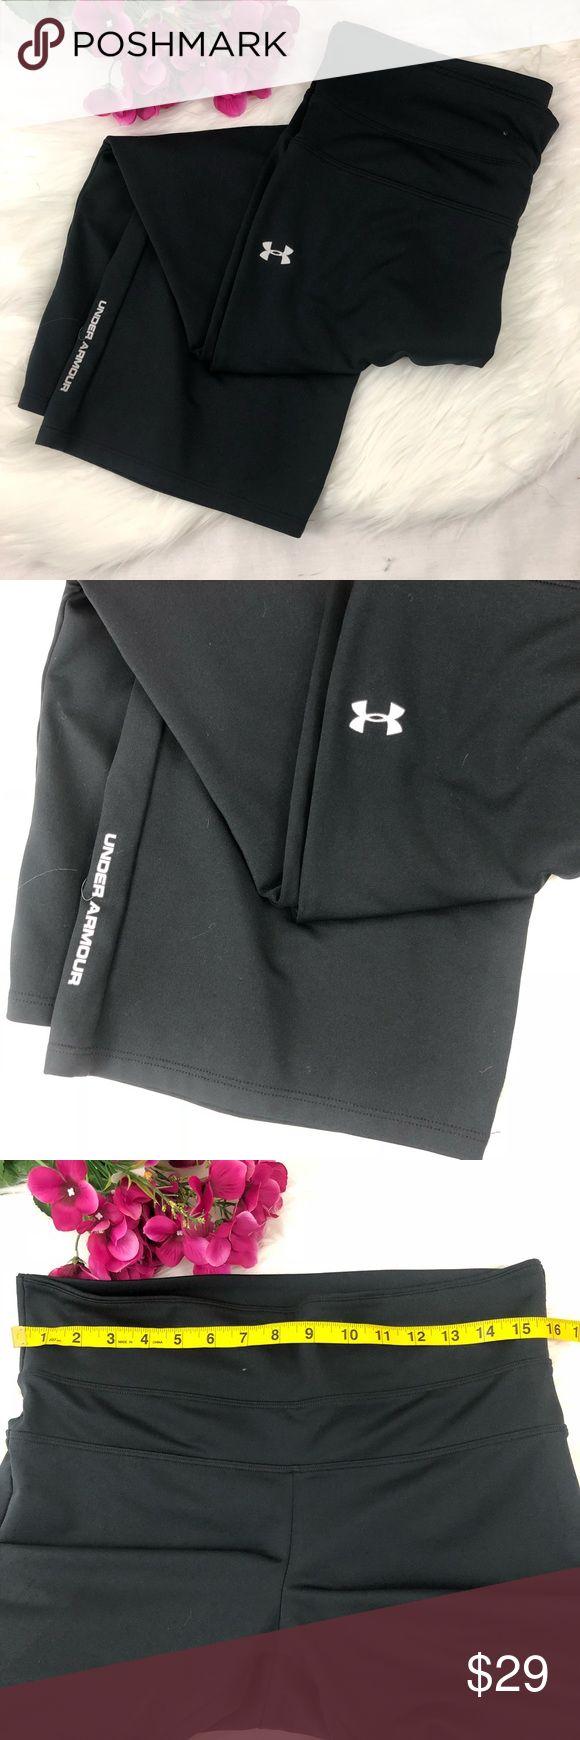 Under Armor Black Cropped High Waist Pants Stretchy black pants from Under Armor. They're cropped length with a higher banded waist for comfort and a slimming effect. Great for working out or just lounging around. They're in excellent condition with no flaws. The waist, rise, and inseam measurements are included in the last three images. (Location) {no trades - no modeling} Under Armour Pants Capris